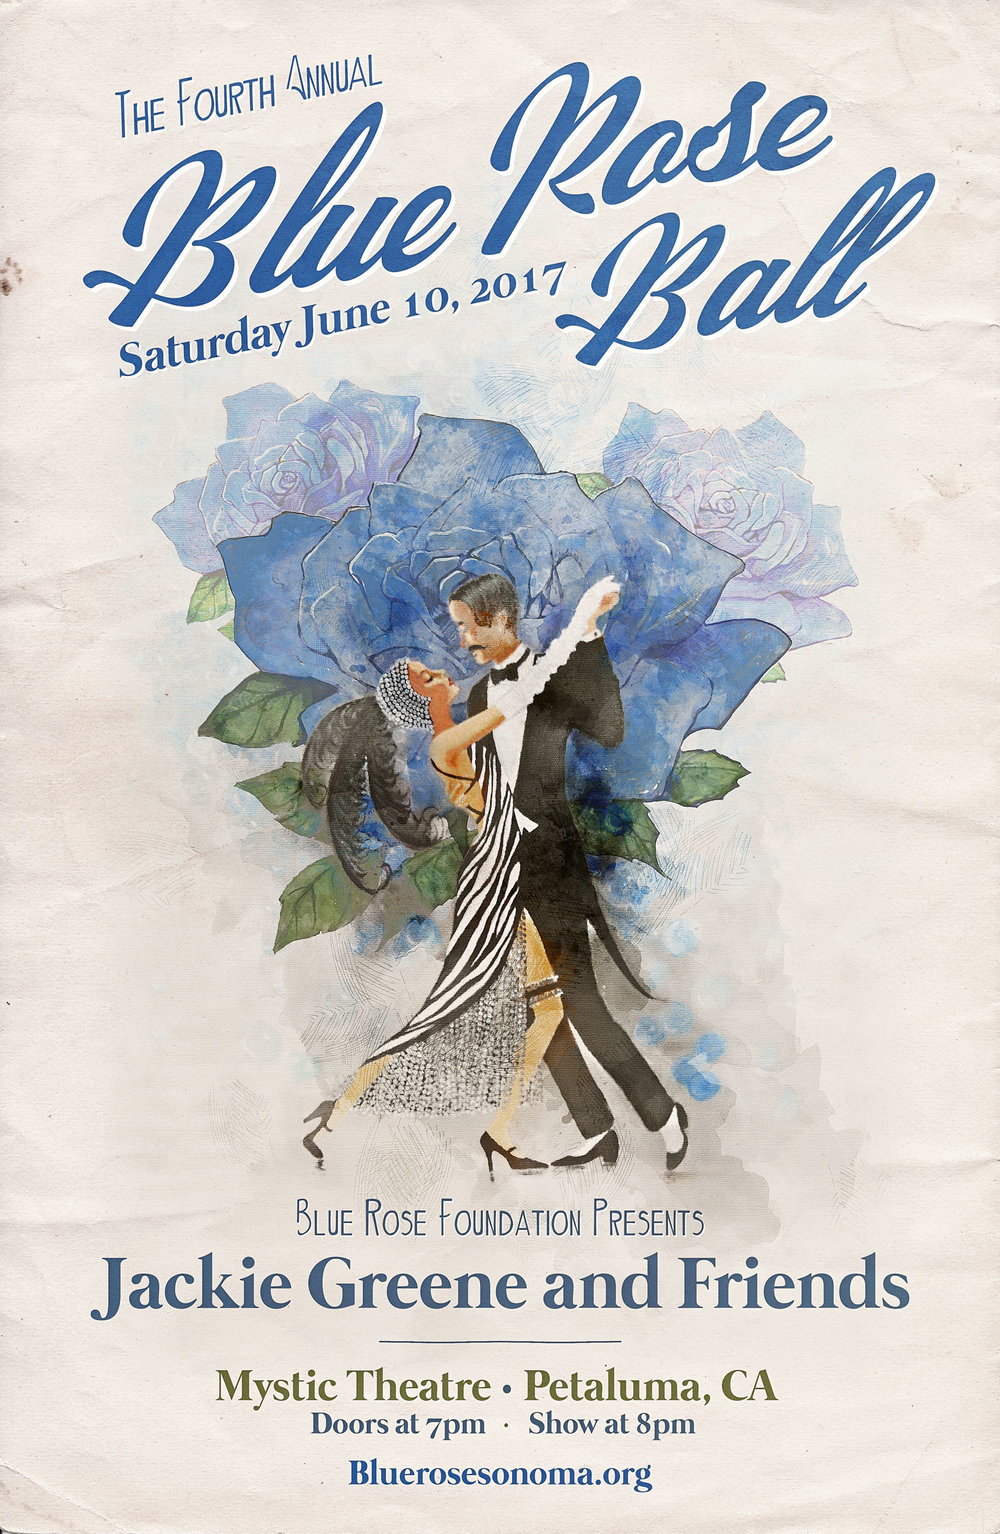 Join us on June 10th at the Mystic Theatre in Petaluma to celebrate the Fourth Annual Blue Rose Ball! Featuring Jackie Greene & Friends.   -